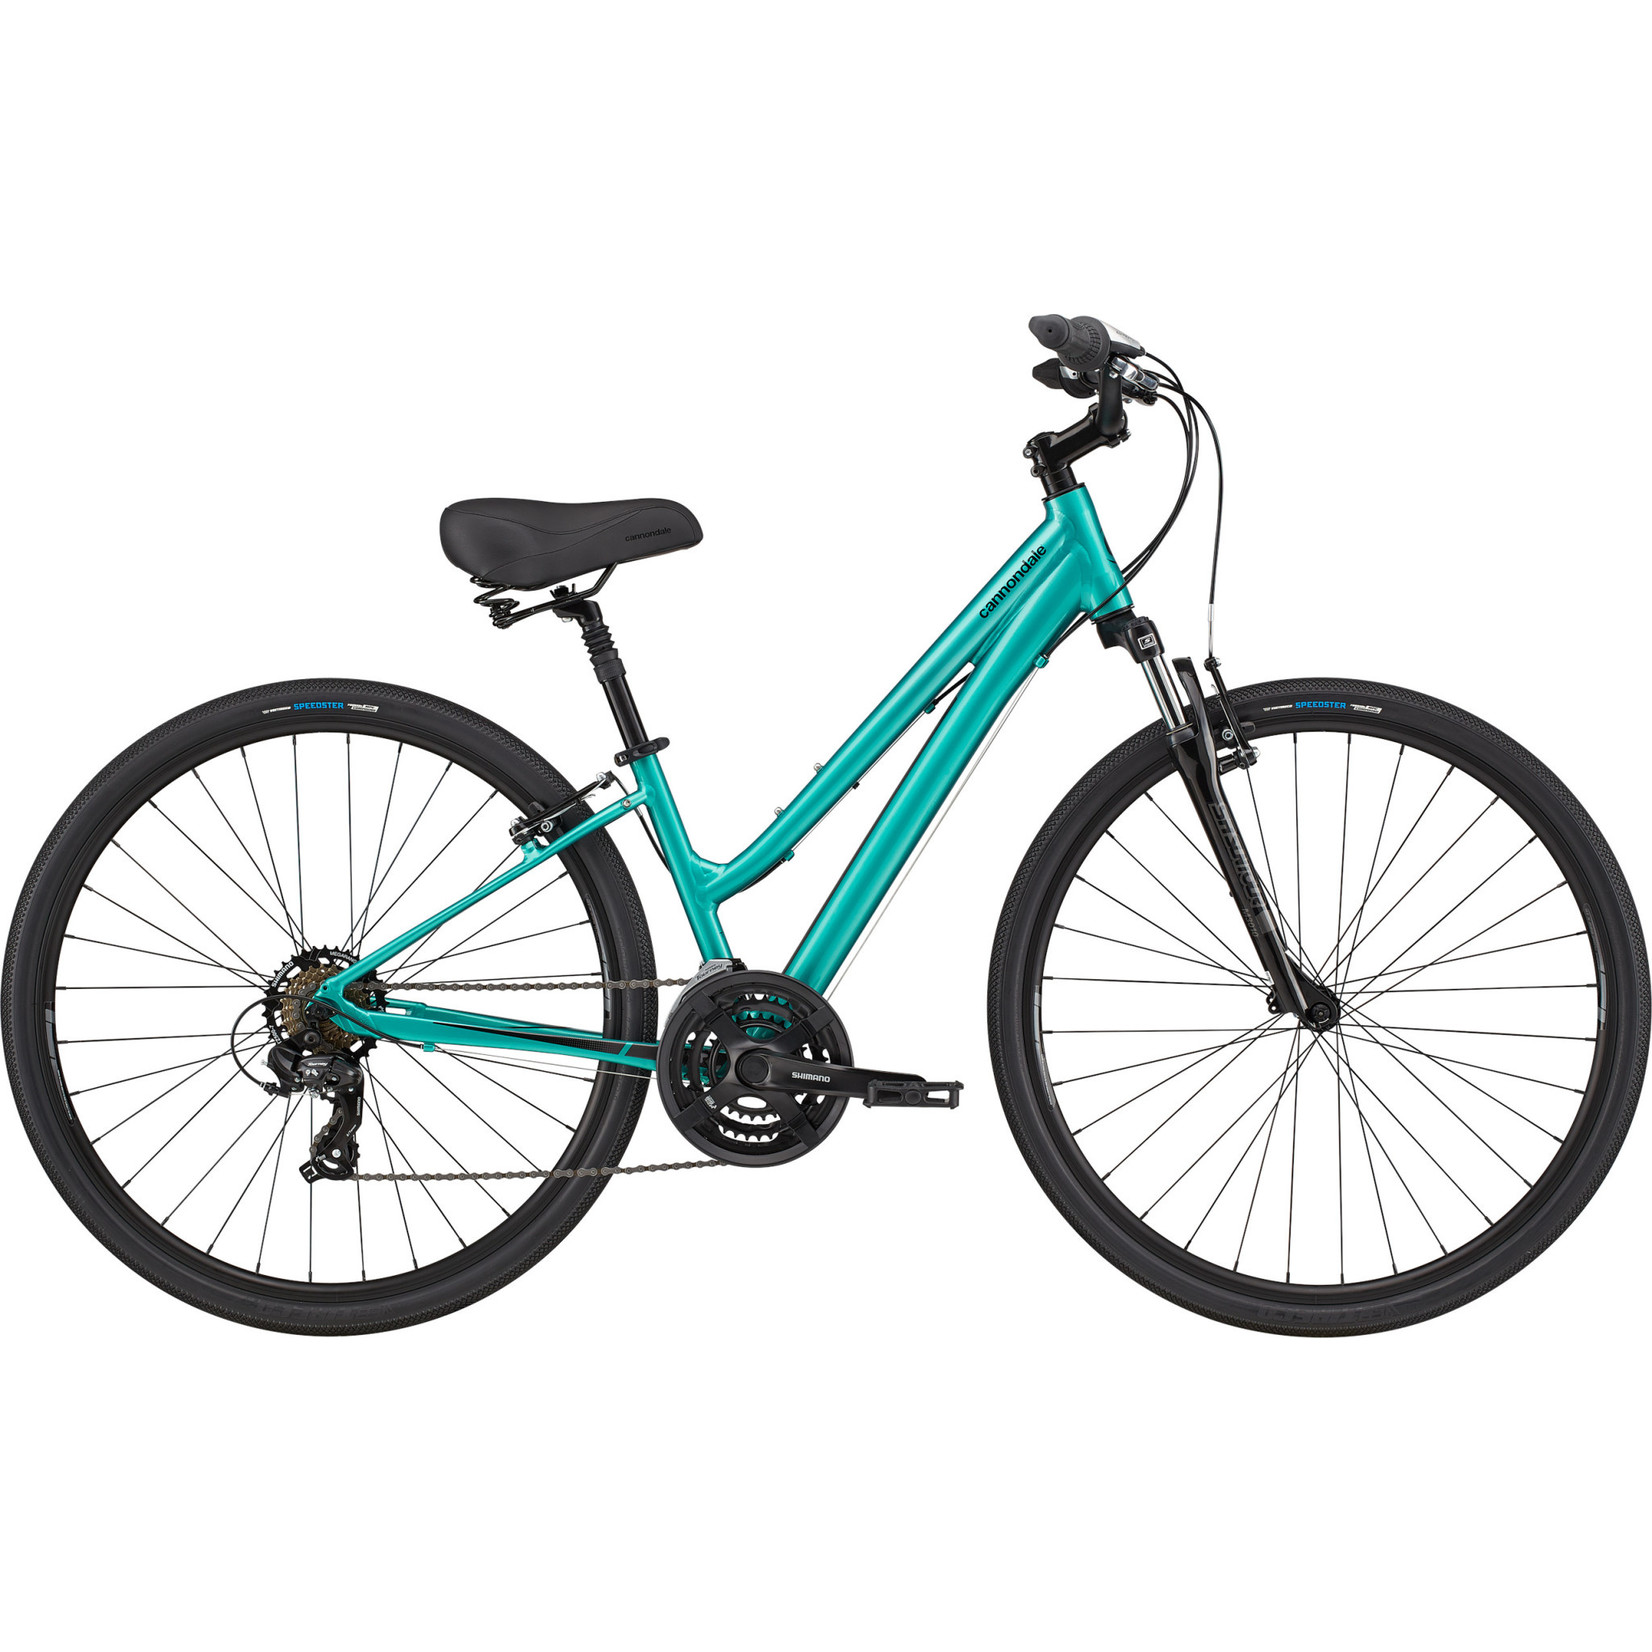 Cannondale 2021 Cannondale Adventure 2 Step-thru Turquoise Small